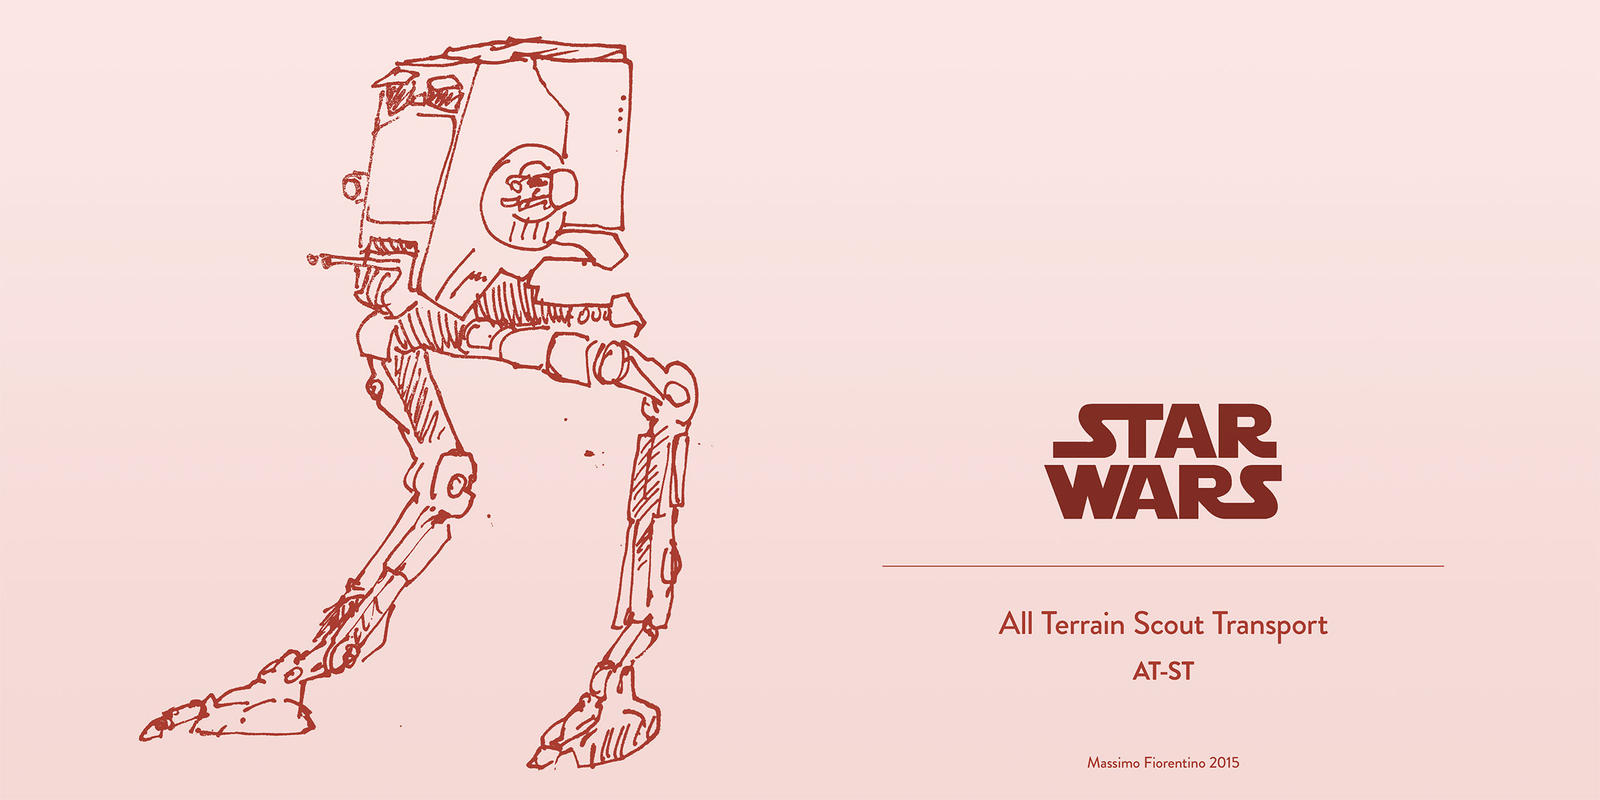 Star Wars All Terrain Scout Transport AT-ST